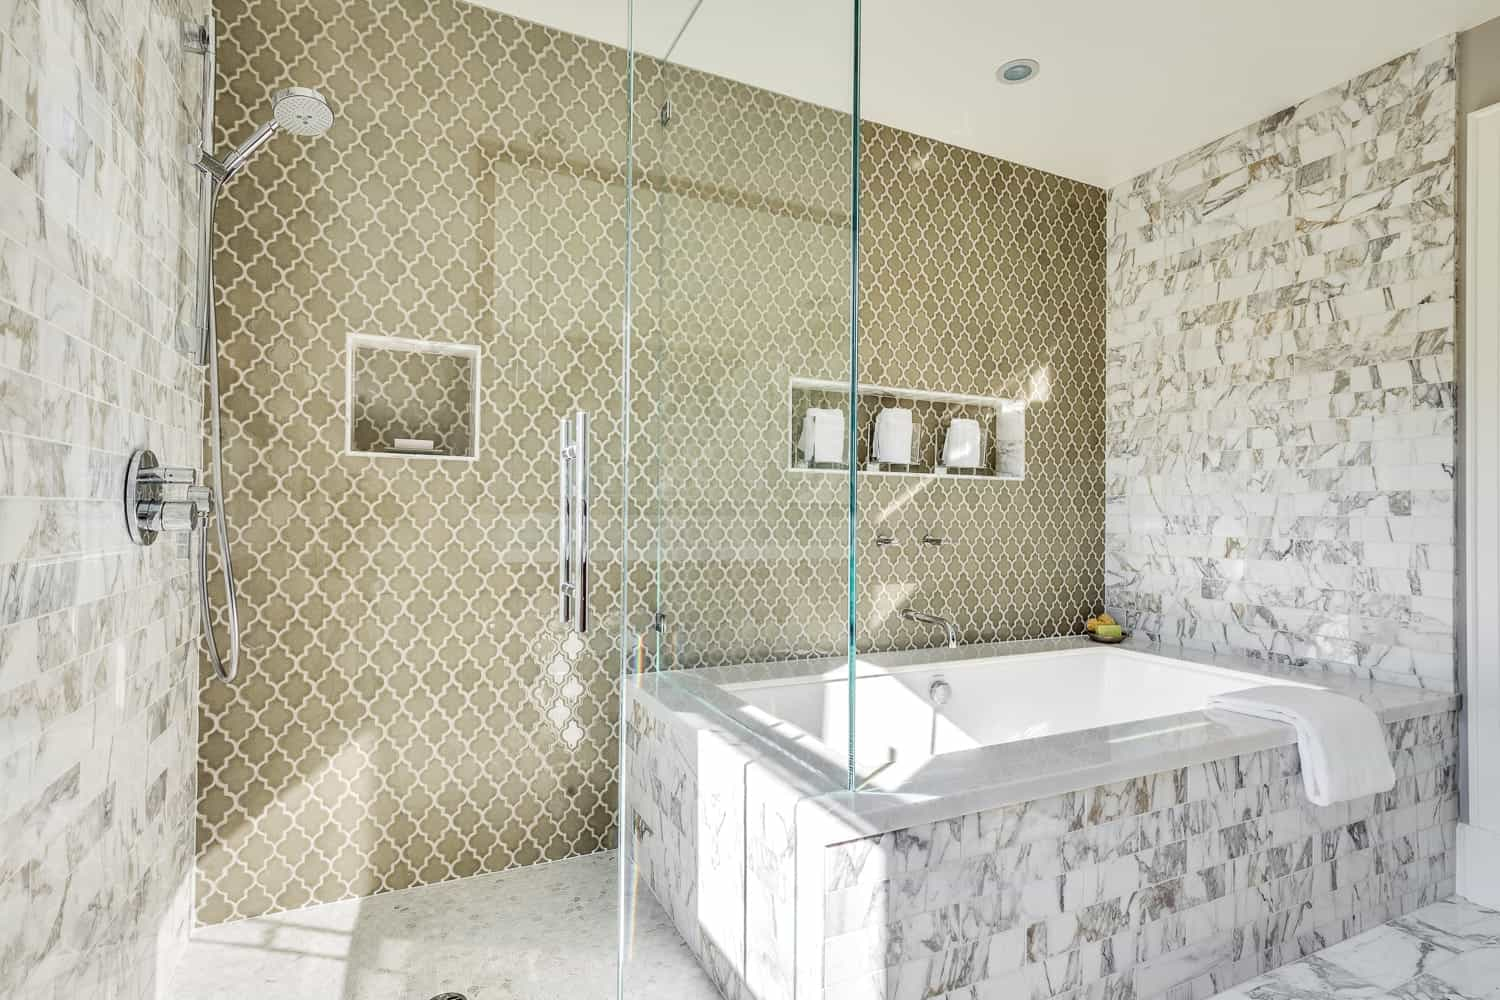 Large Modern Bathroom Featuring Combination With A Glass Shower And Jacuzzi Tub With Patterned Tile Accent Wall (Photo 7 of 16)